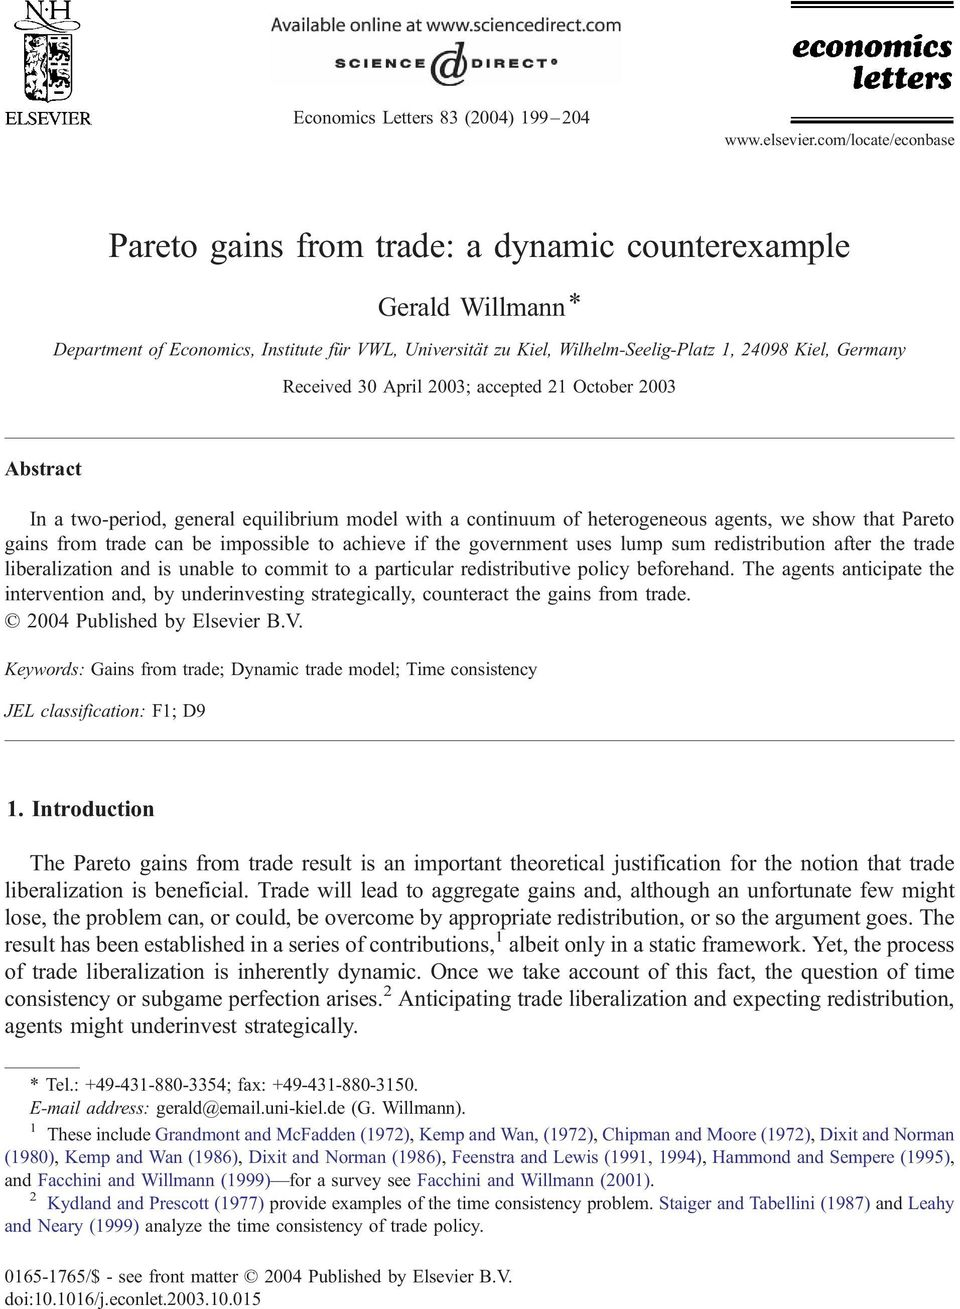 Received 30 April 2003; accepted 21 October 2003 Abstract In a two-period, general equilibrium model with a continuum of heterogeneous agents, we show that Pareto gains from trade can be impossible